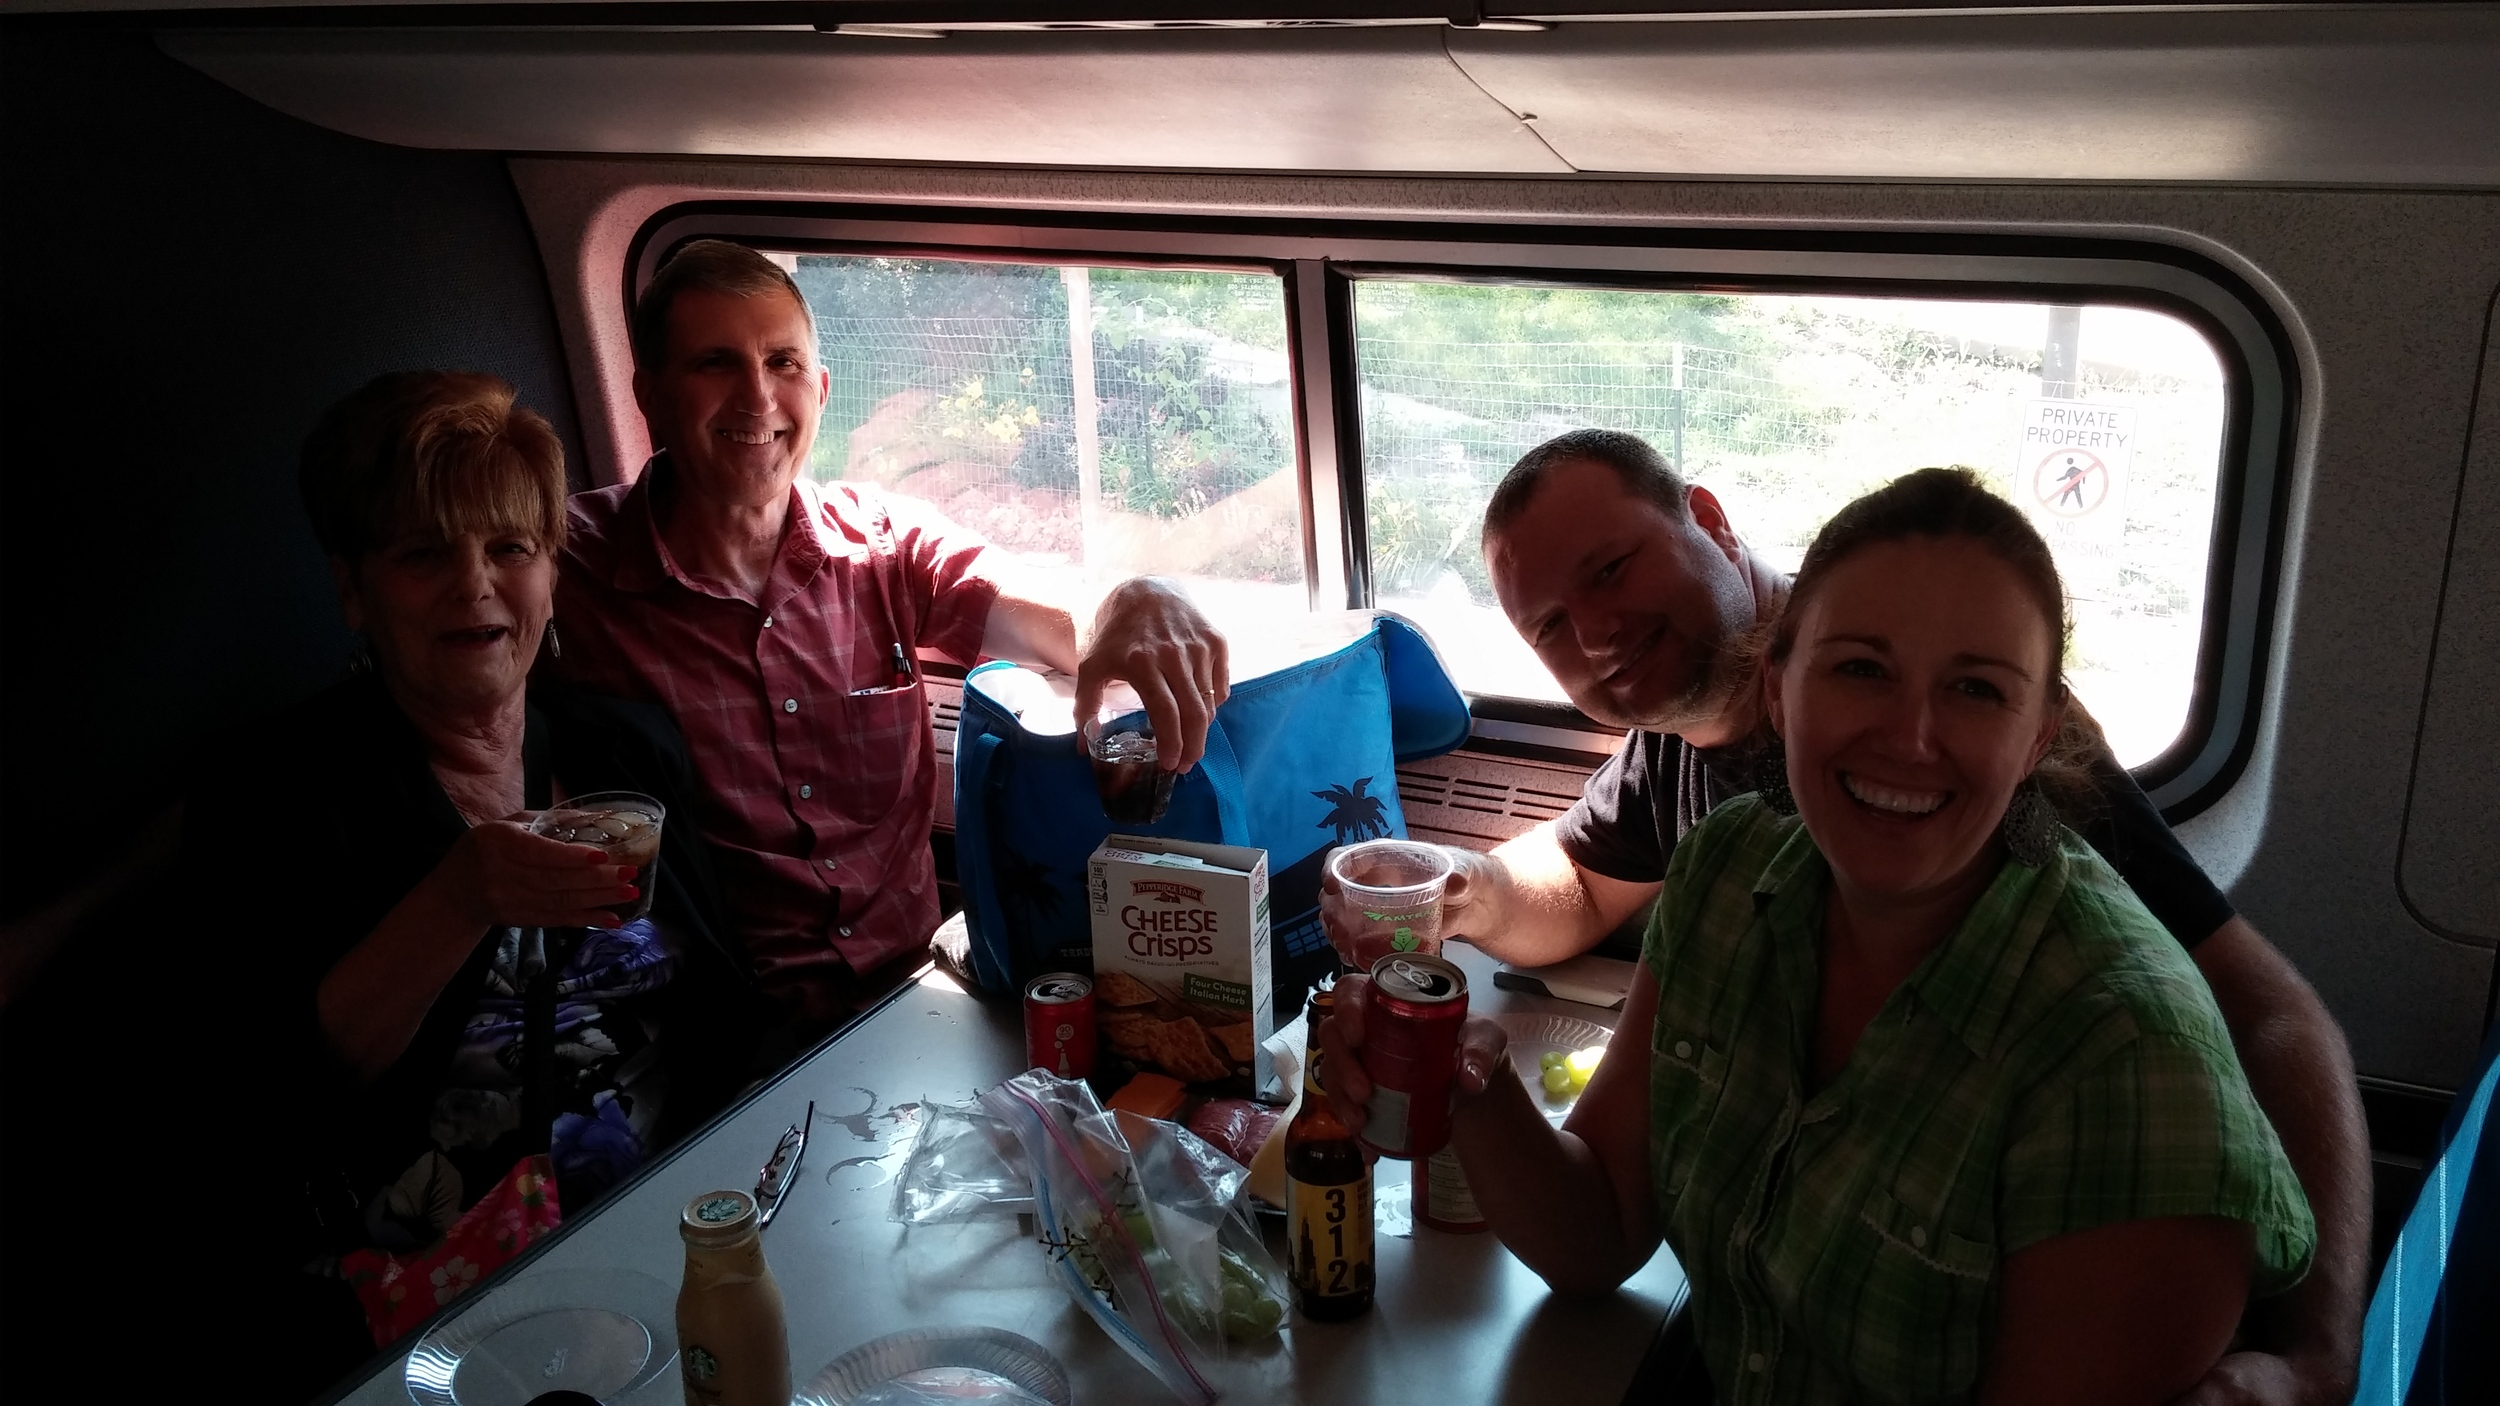 Cocktails on the train!